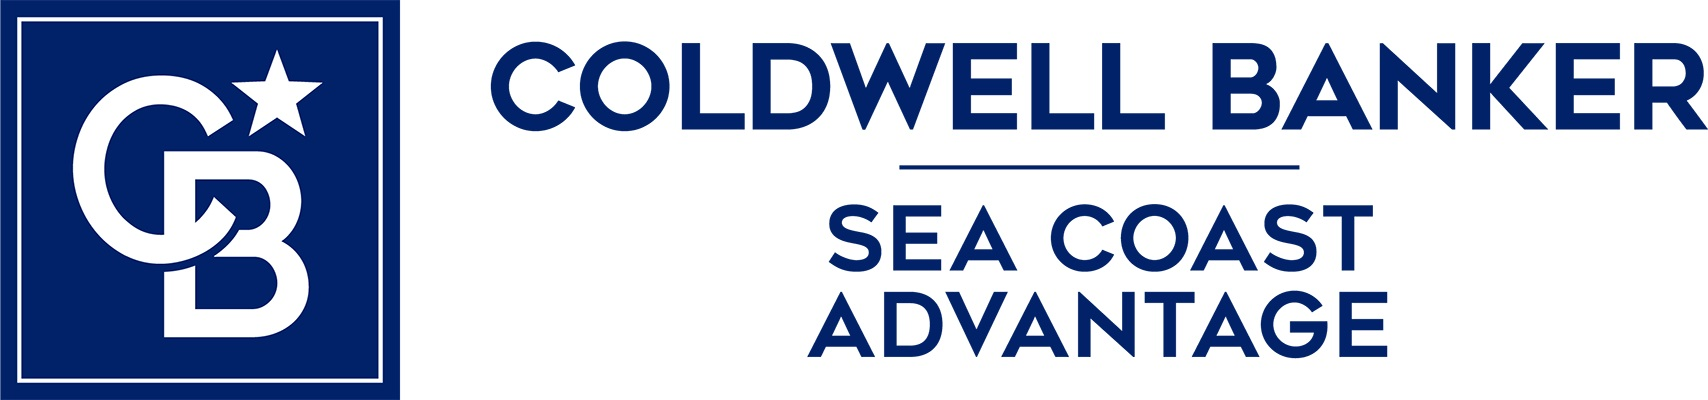 Tom Guzulaitis - Coldwell Banker Sea Coast Advantage Realty Logo